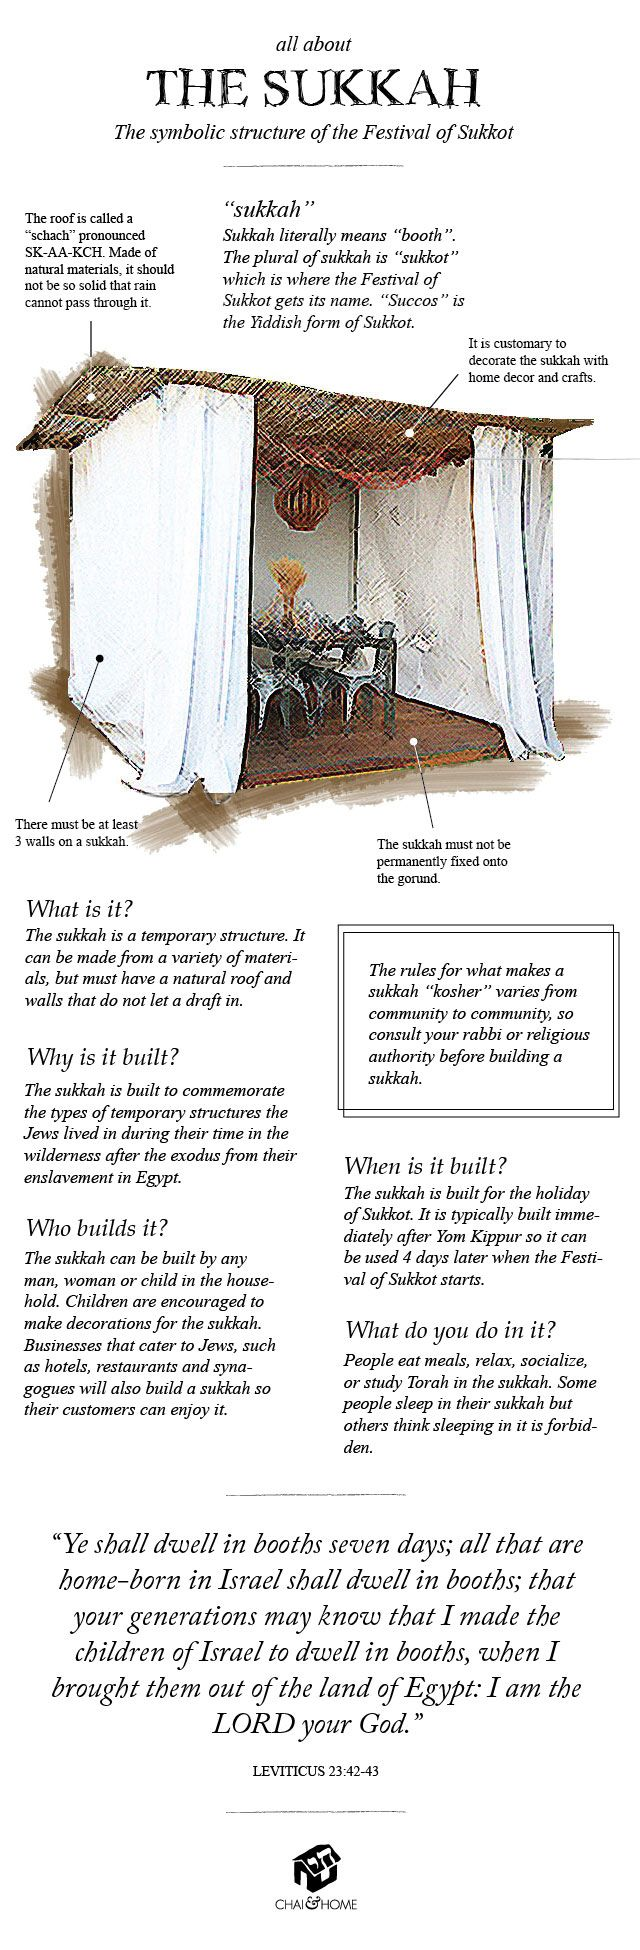 All About The Sukkah: Infographic - The Symbolic Structure of the Festival of Sukkot | Chai & Home